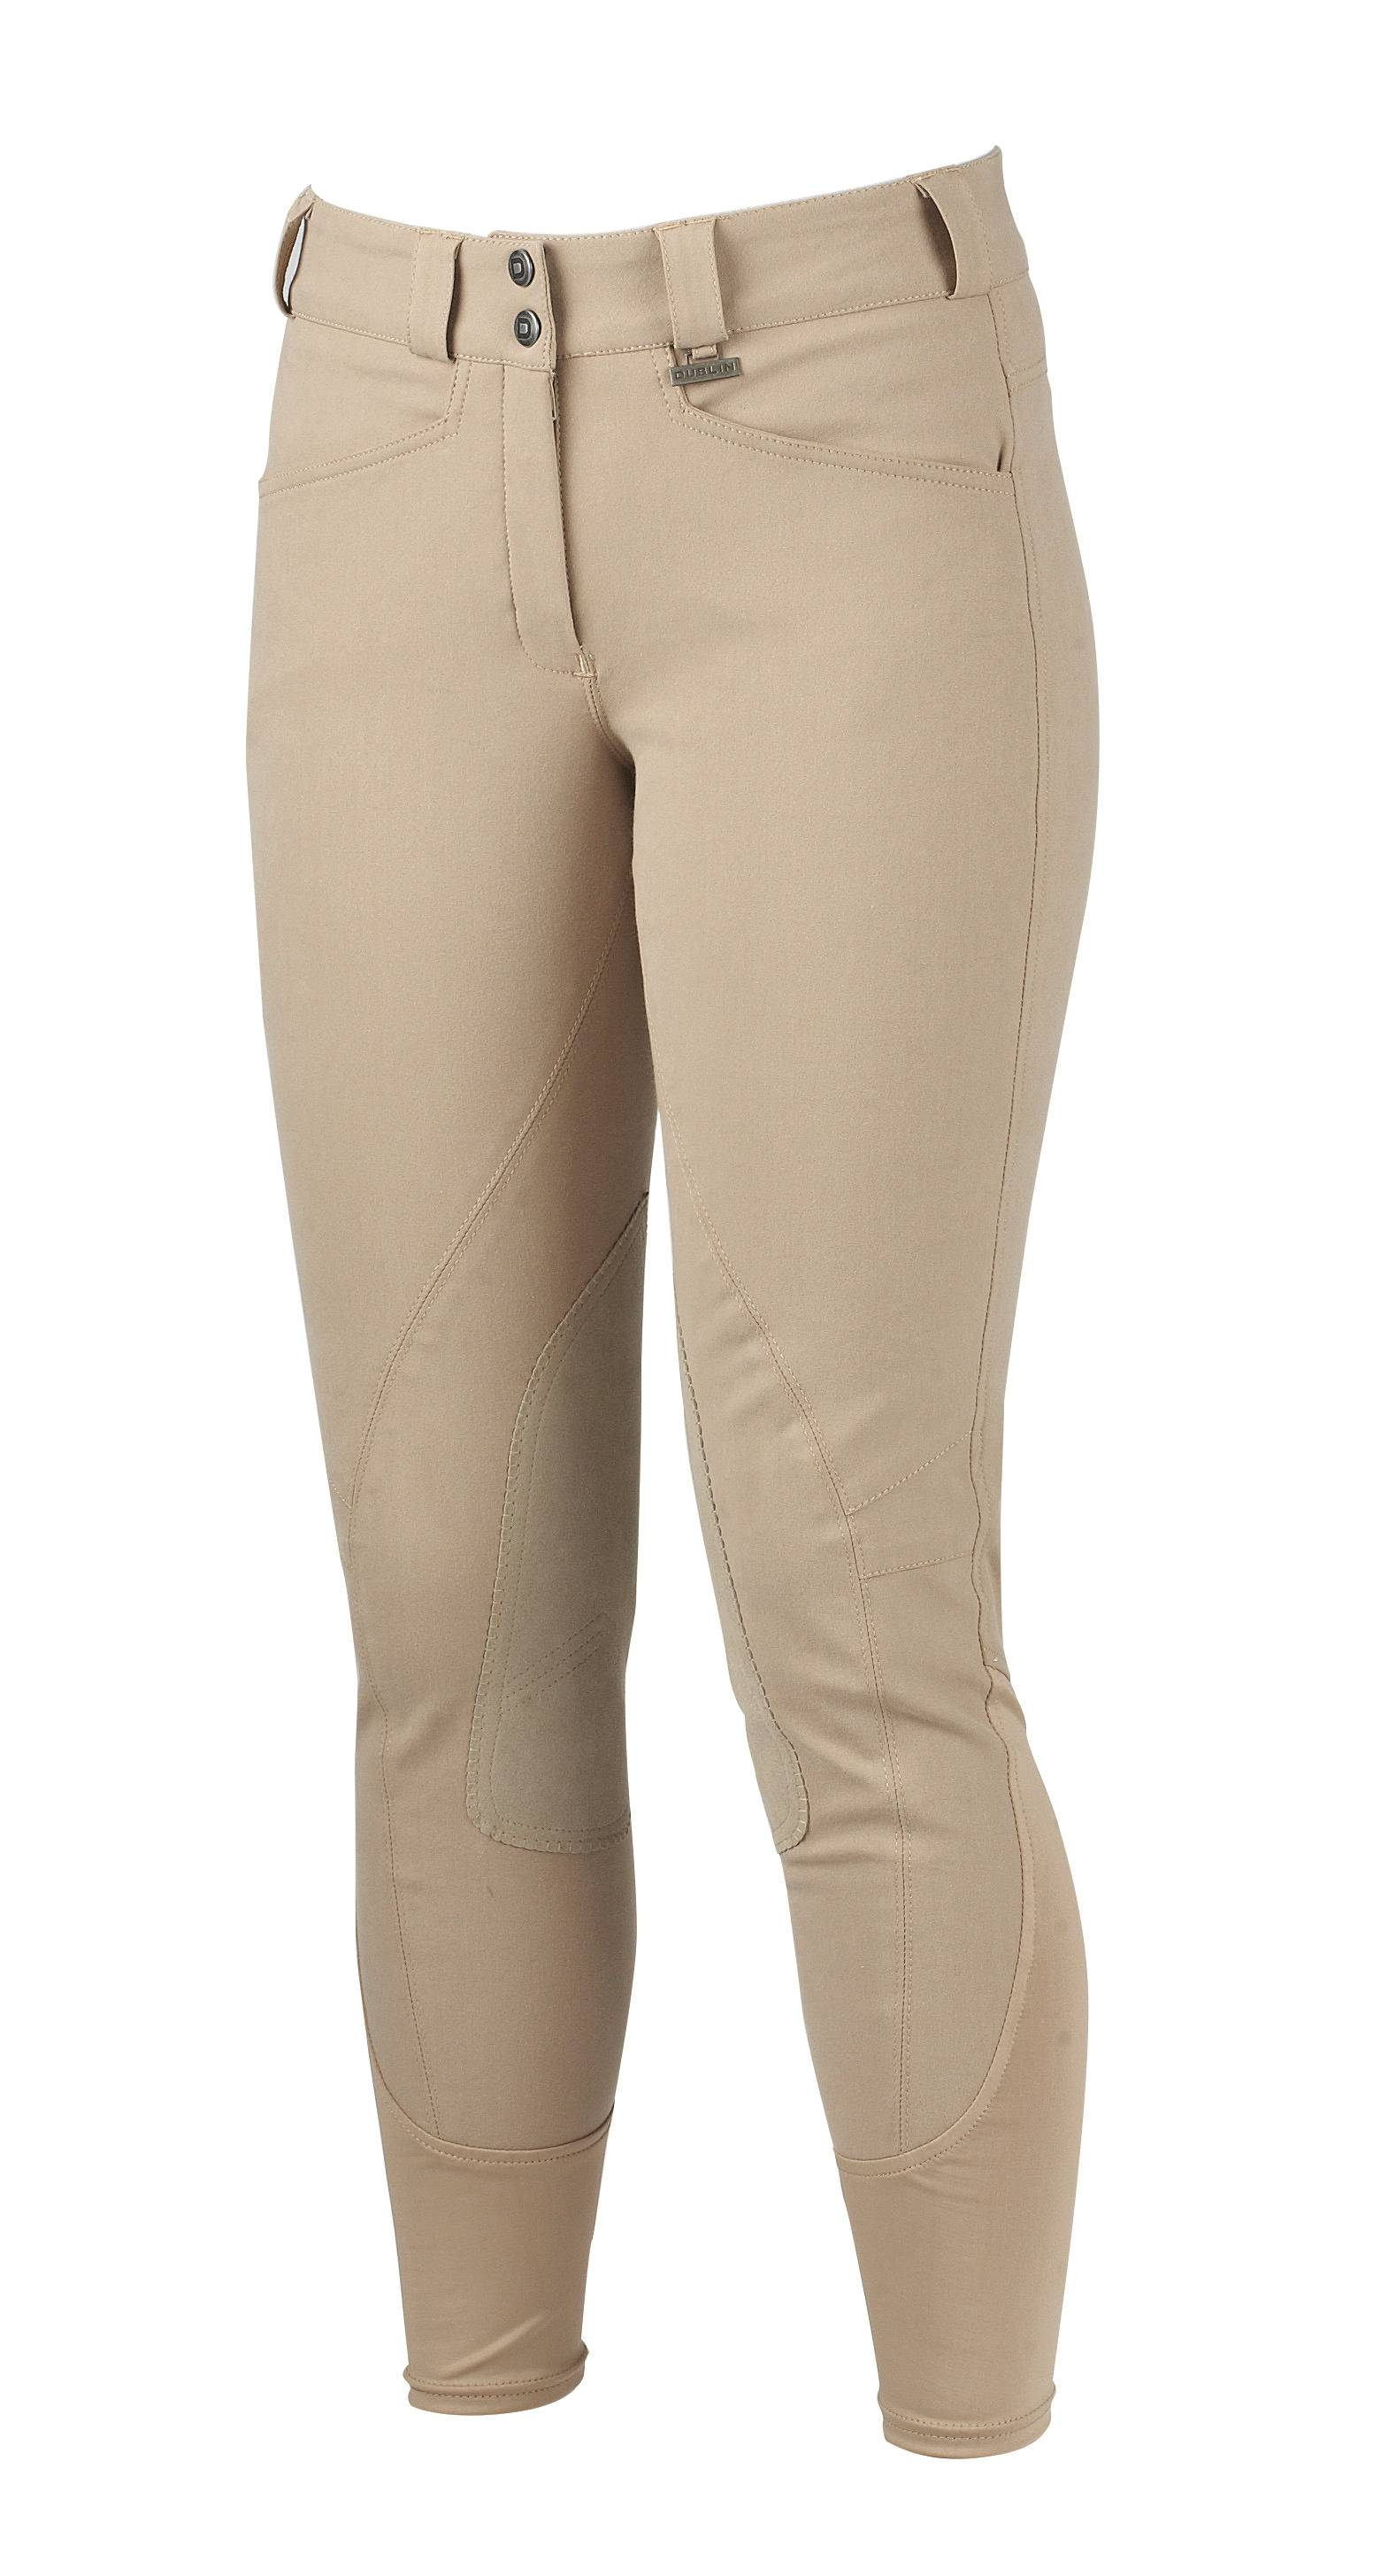 Dublin Performance Slender Breeches - Ladies, EuroSeat